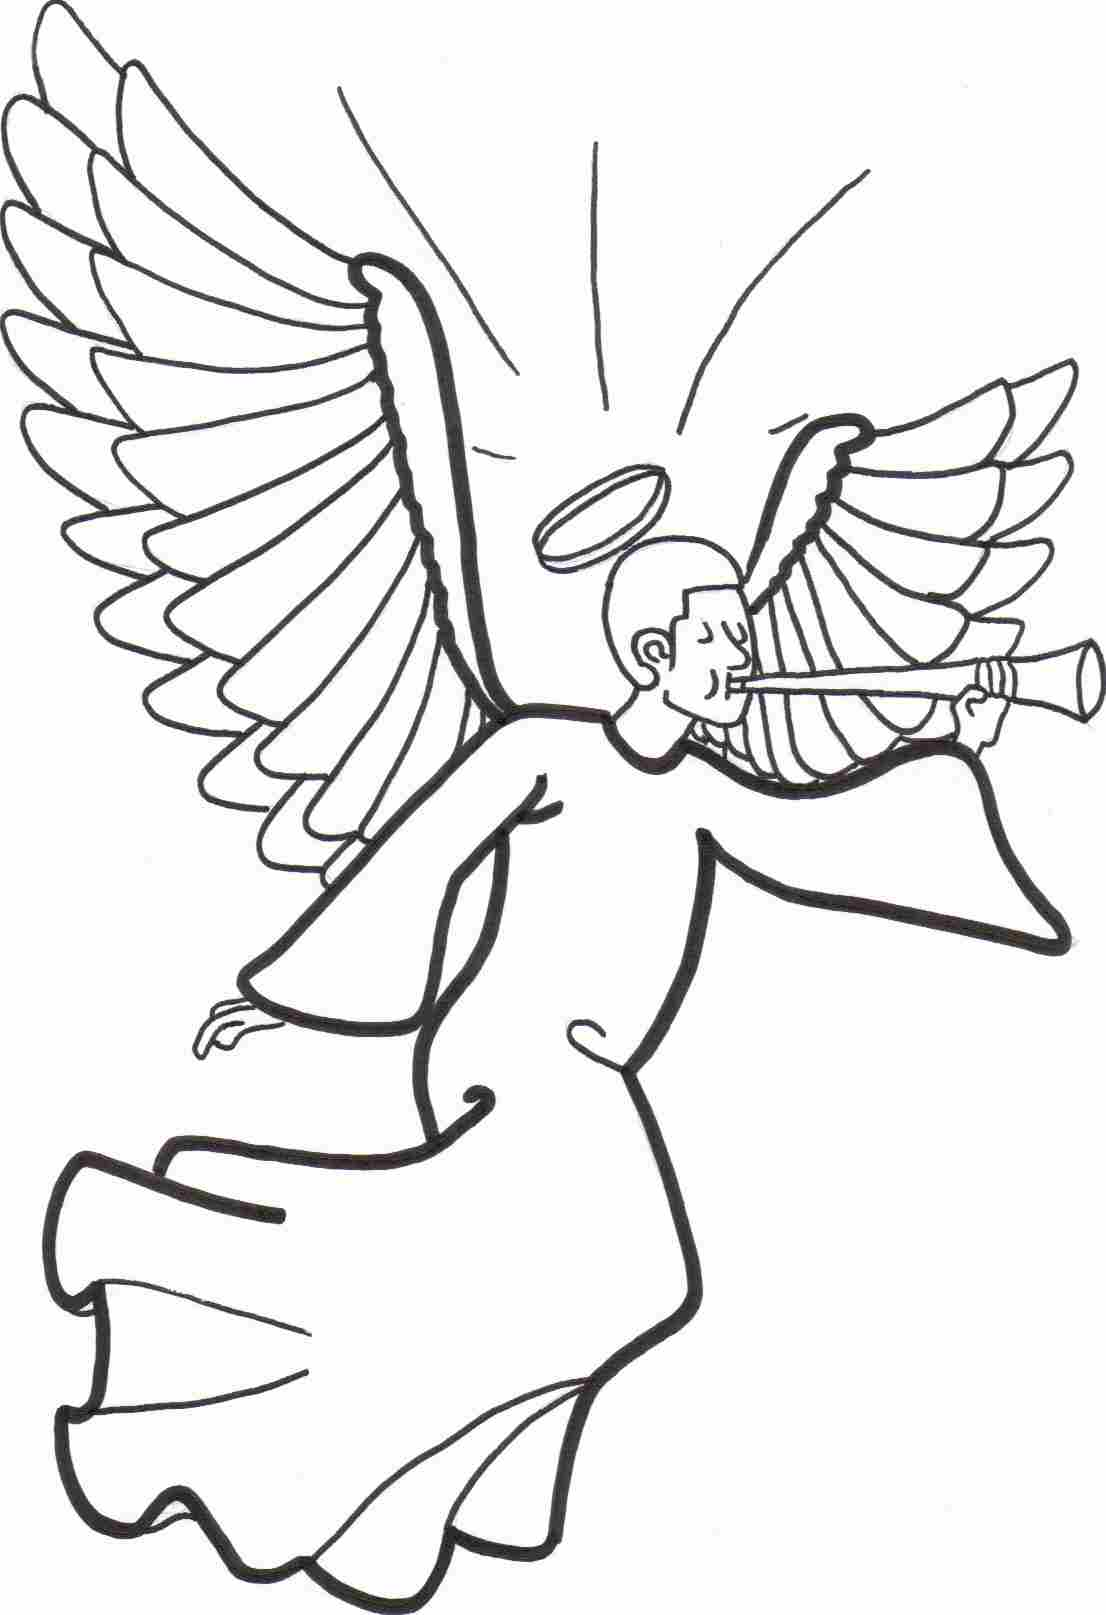 angel coloring sheets free printable angel coloring for your kids sheets coloring angel